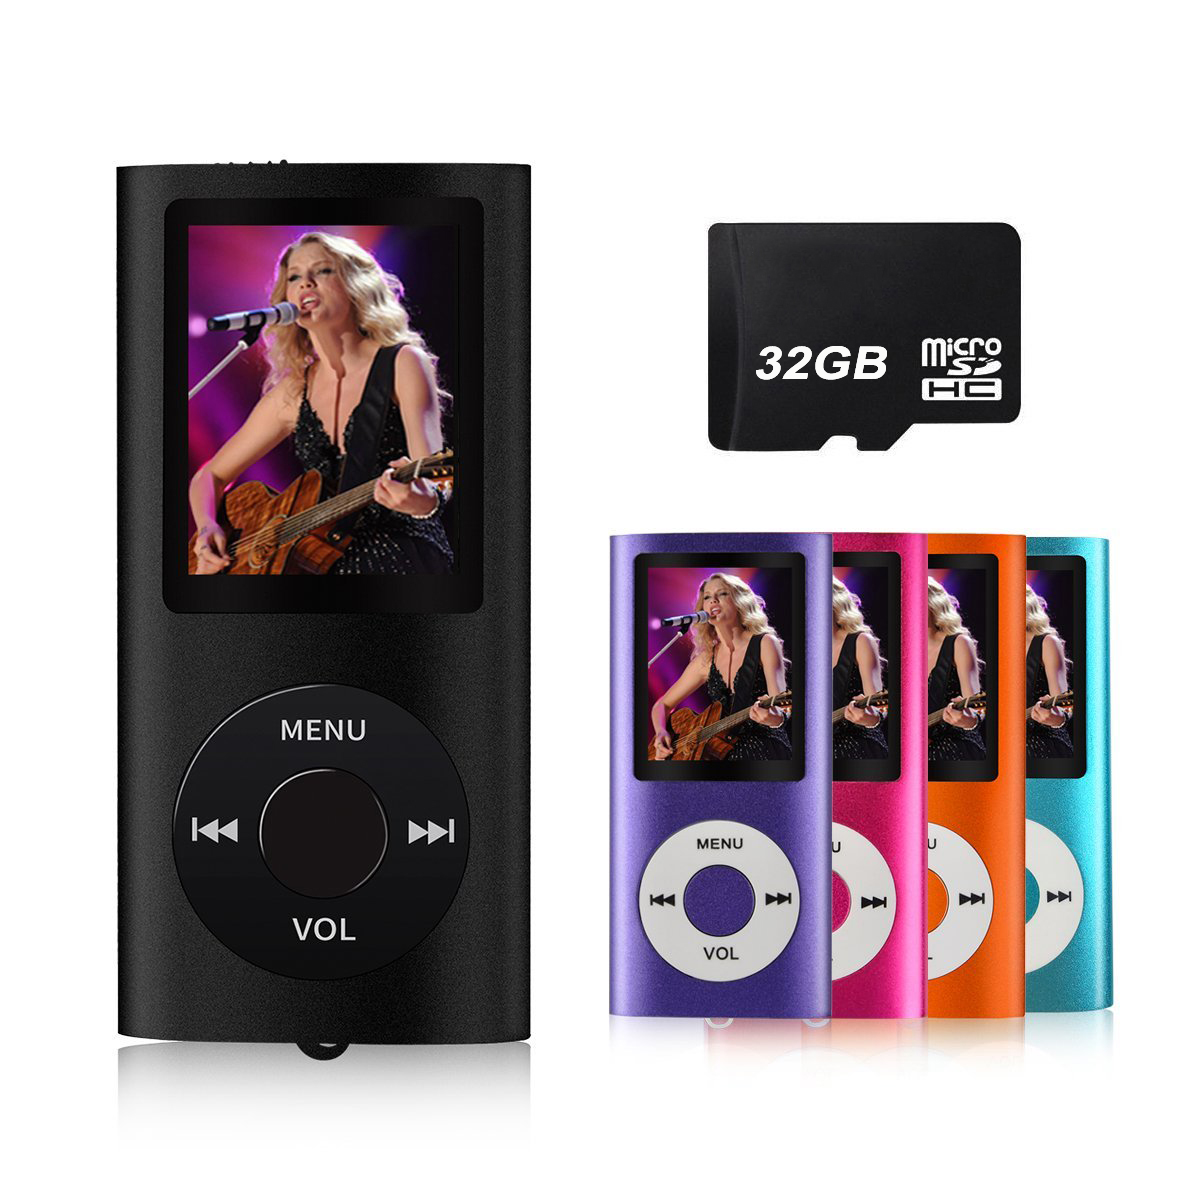 Digital Compact and Portable 32Gb MP3 / MP4 Player with Photo Viewer, E-Book Reader and Voice Recorder and FM Radio Video Movie